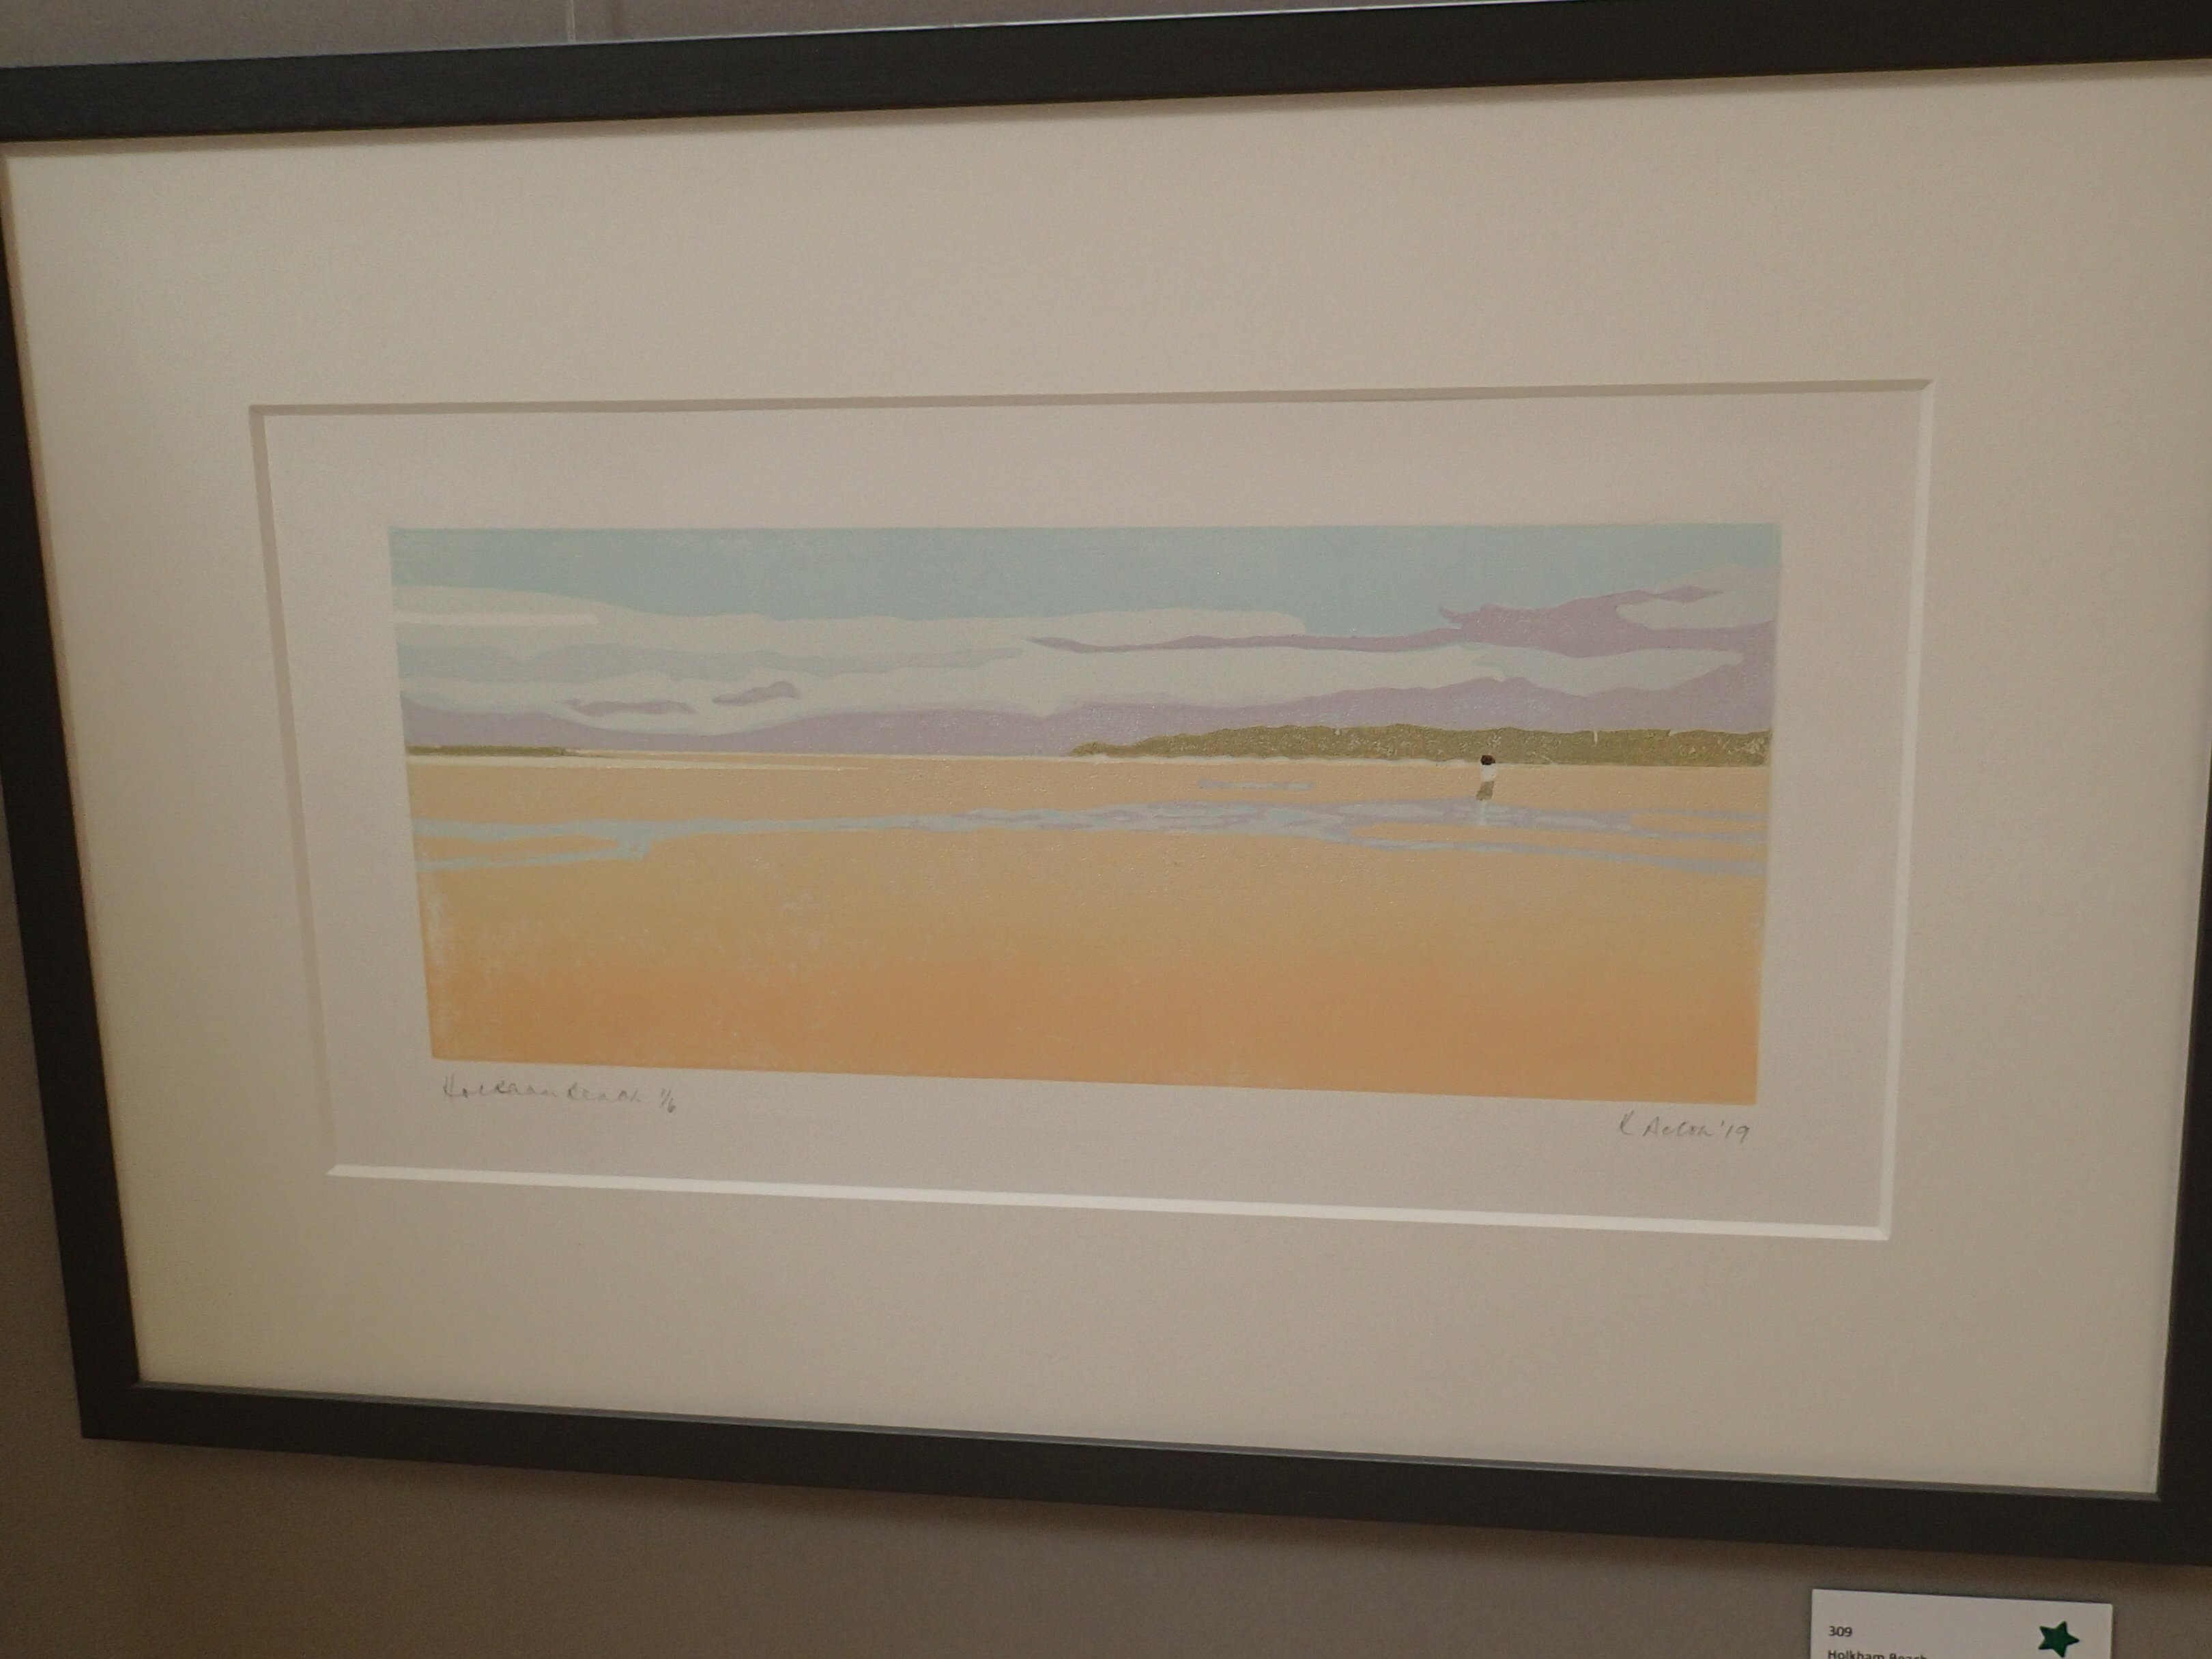 Holkham Beach by Kathryn Acton